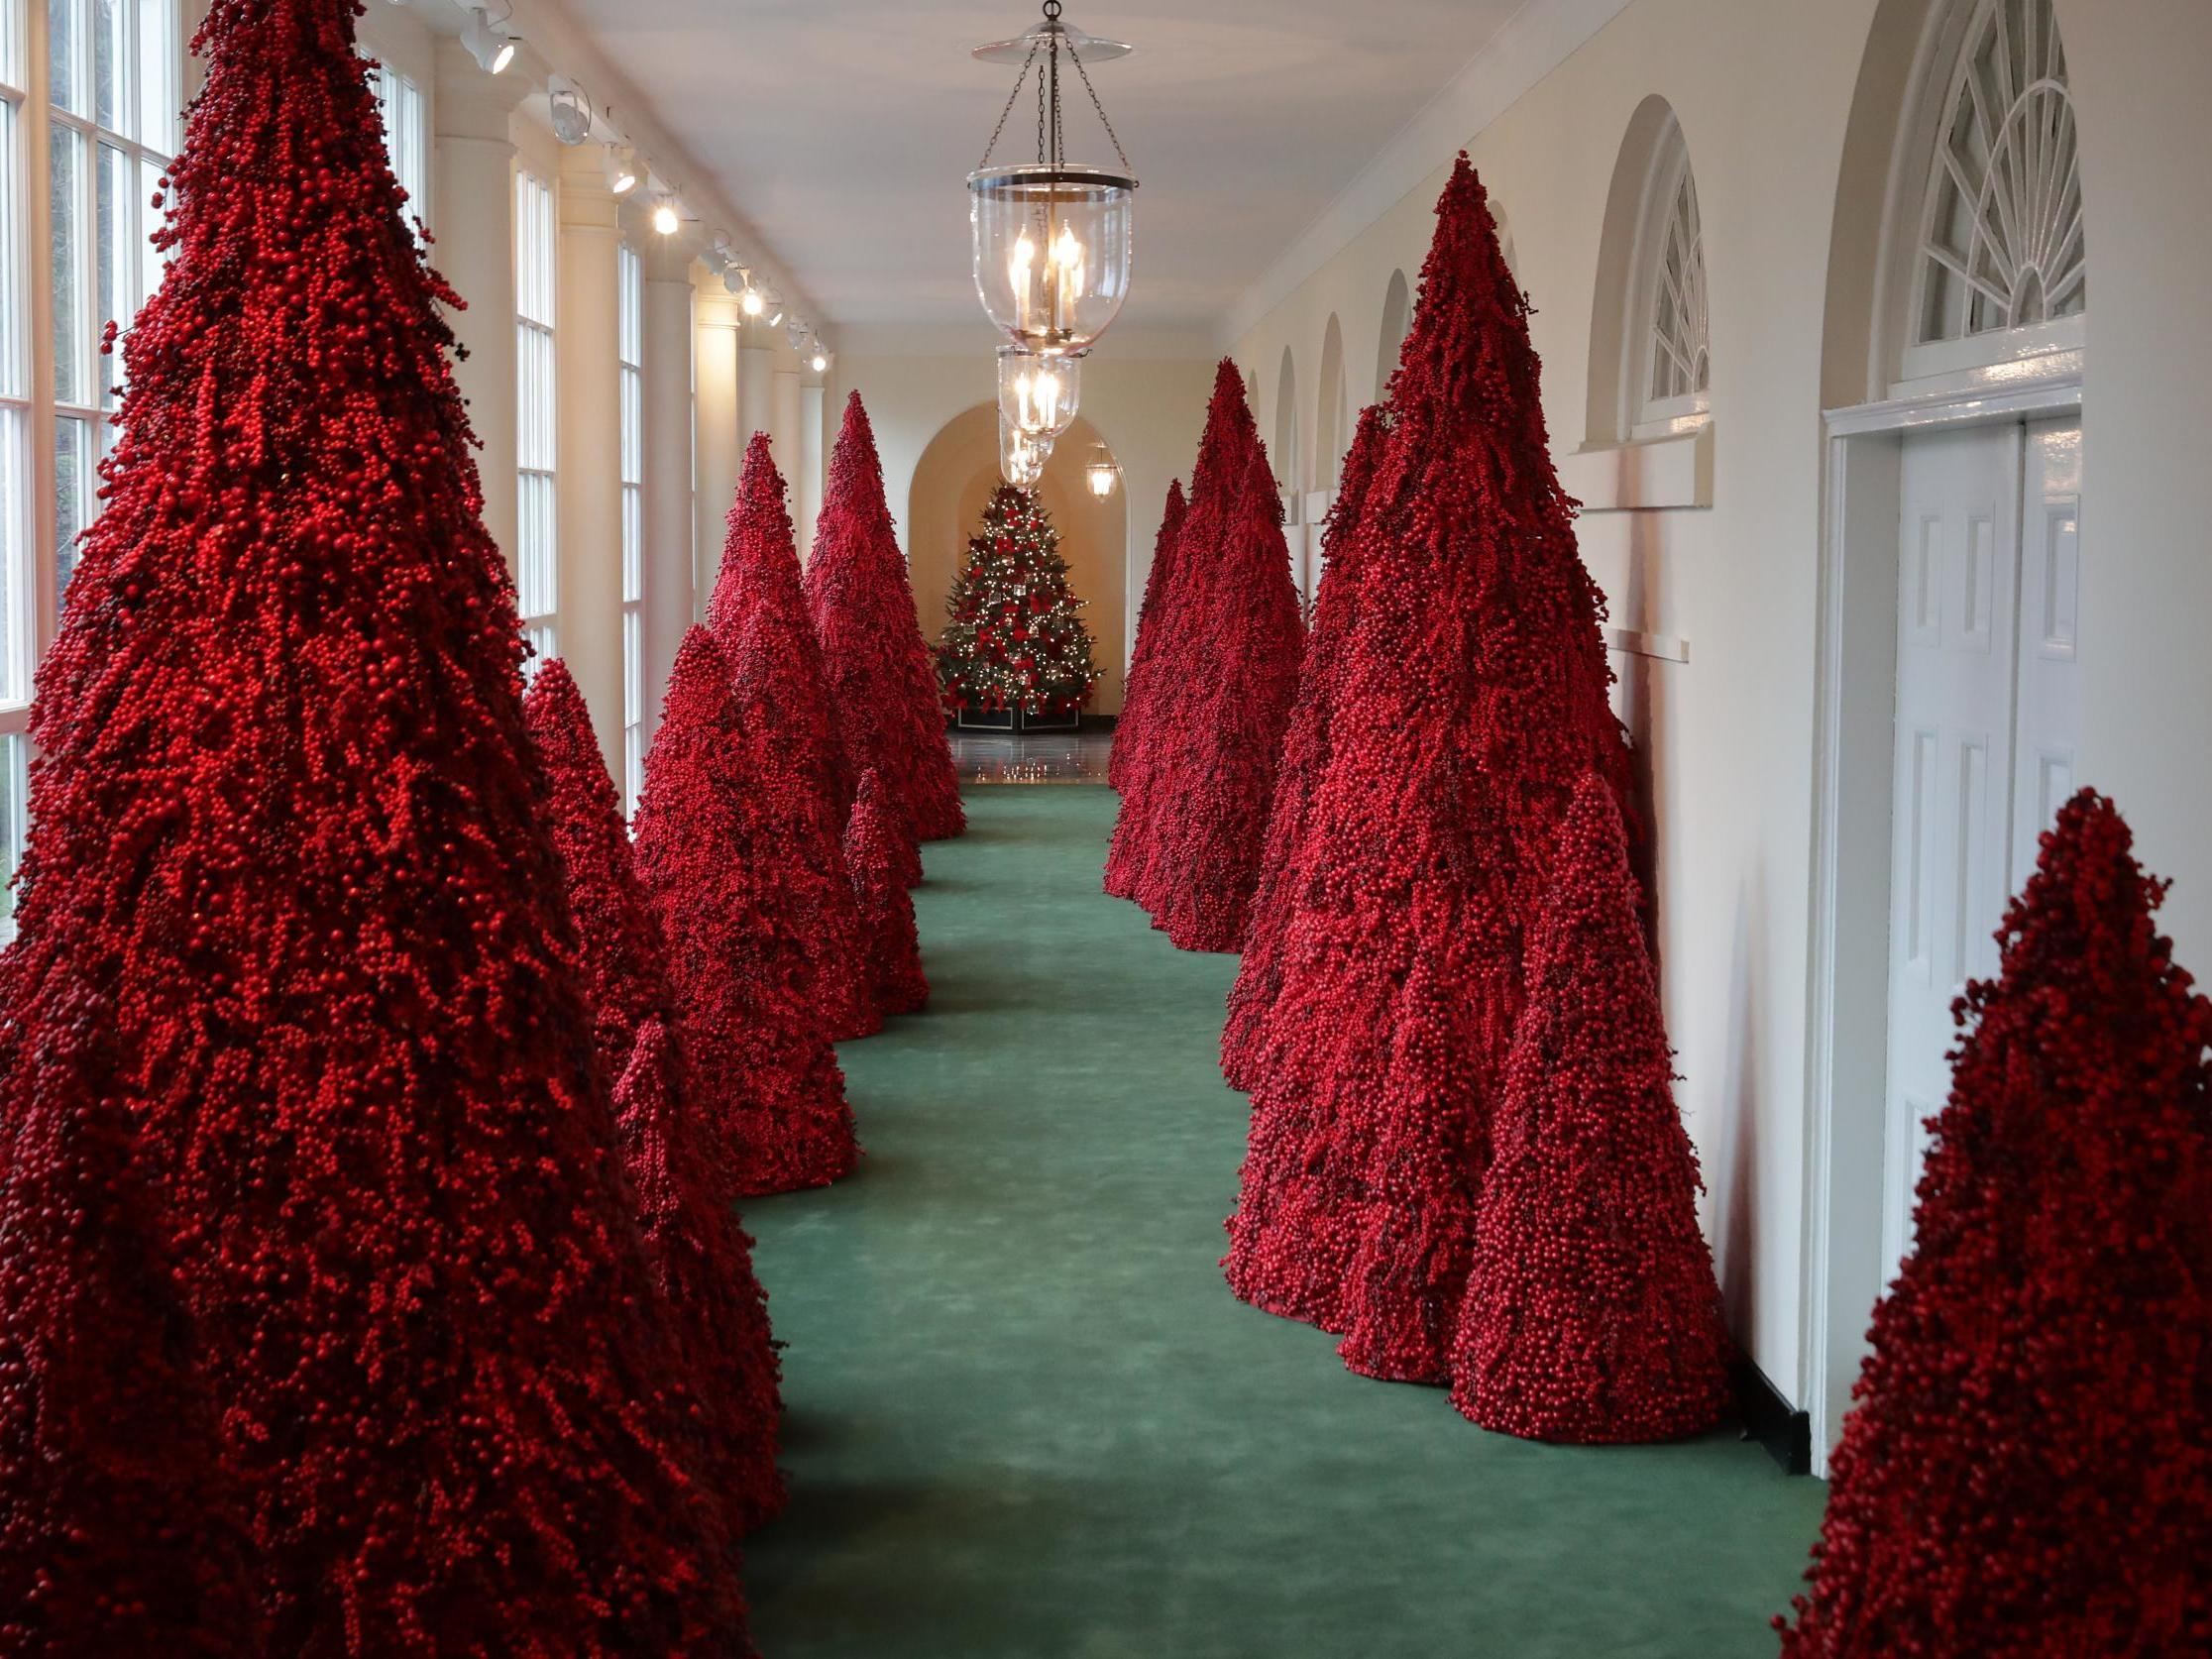 ae0b14dd1104 Melania Trump lashes out at media for mocking her blood-red Christmas trees  at White House | The Independent